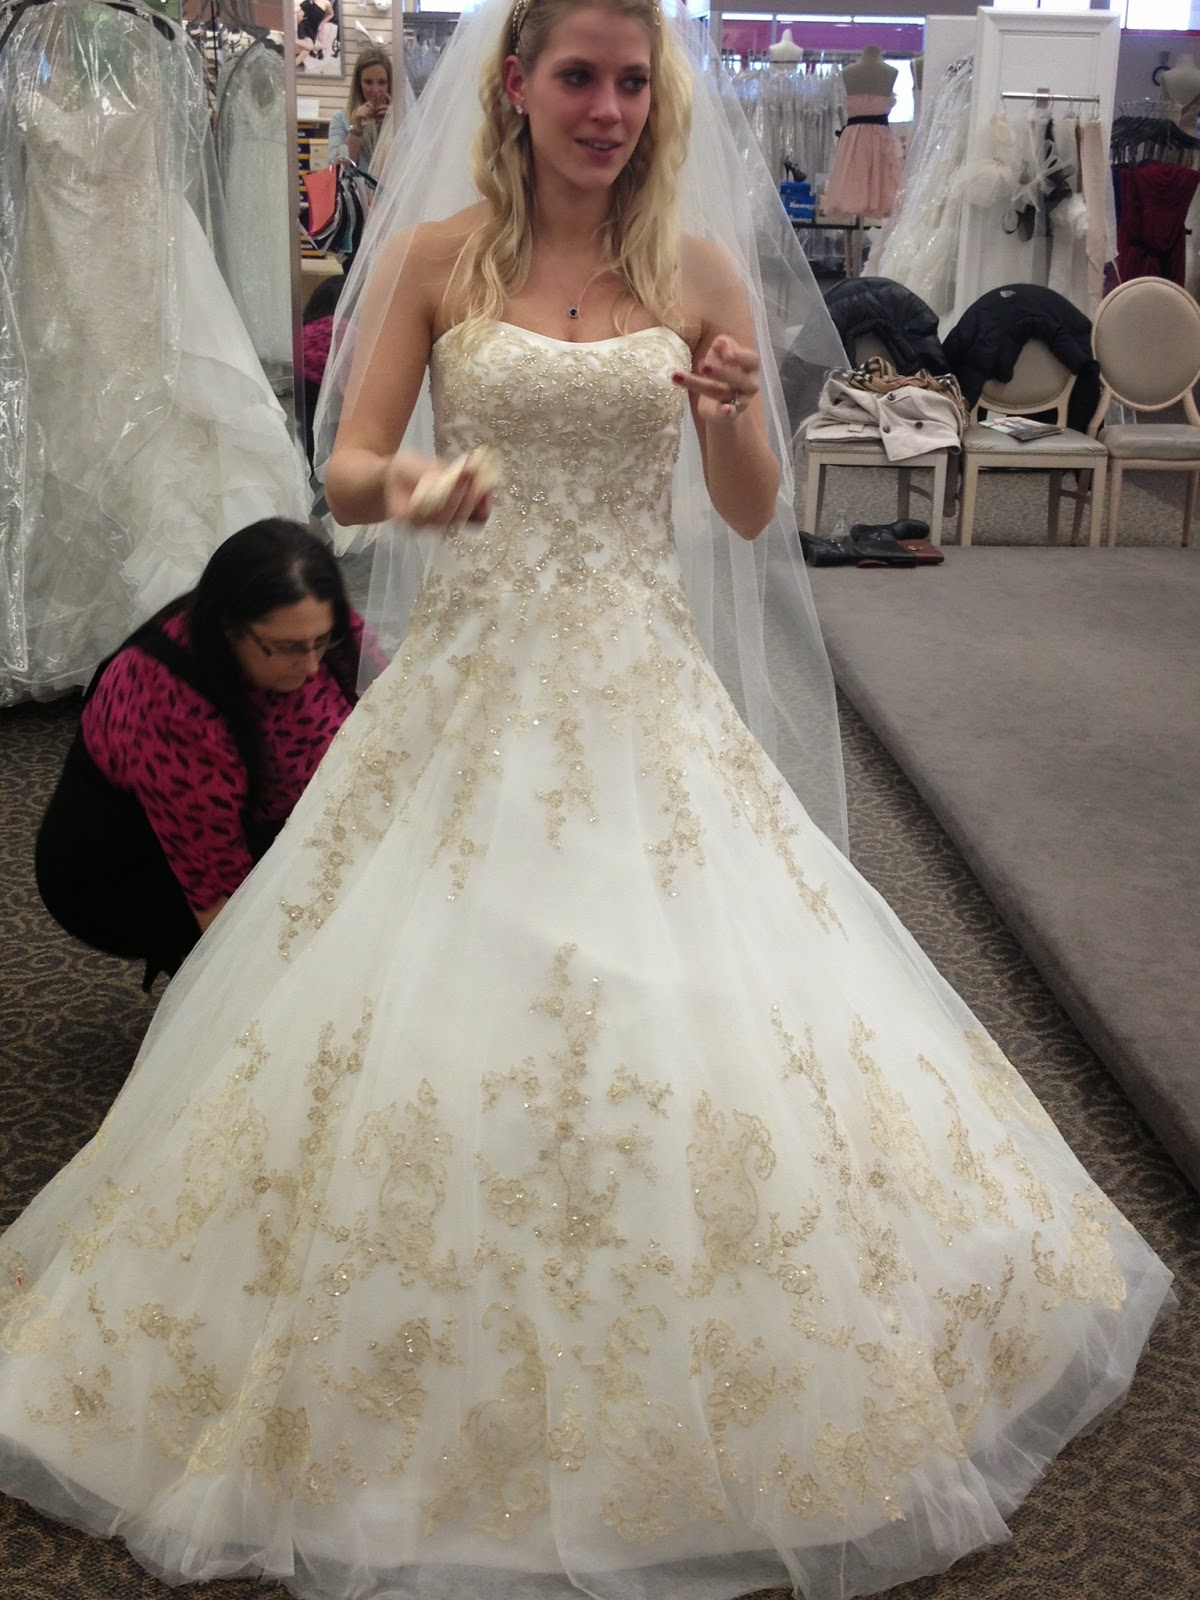 shopping for a wedding dress